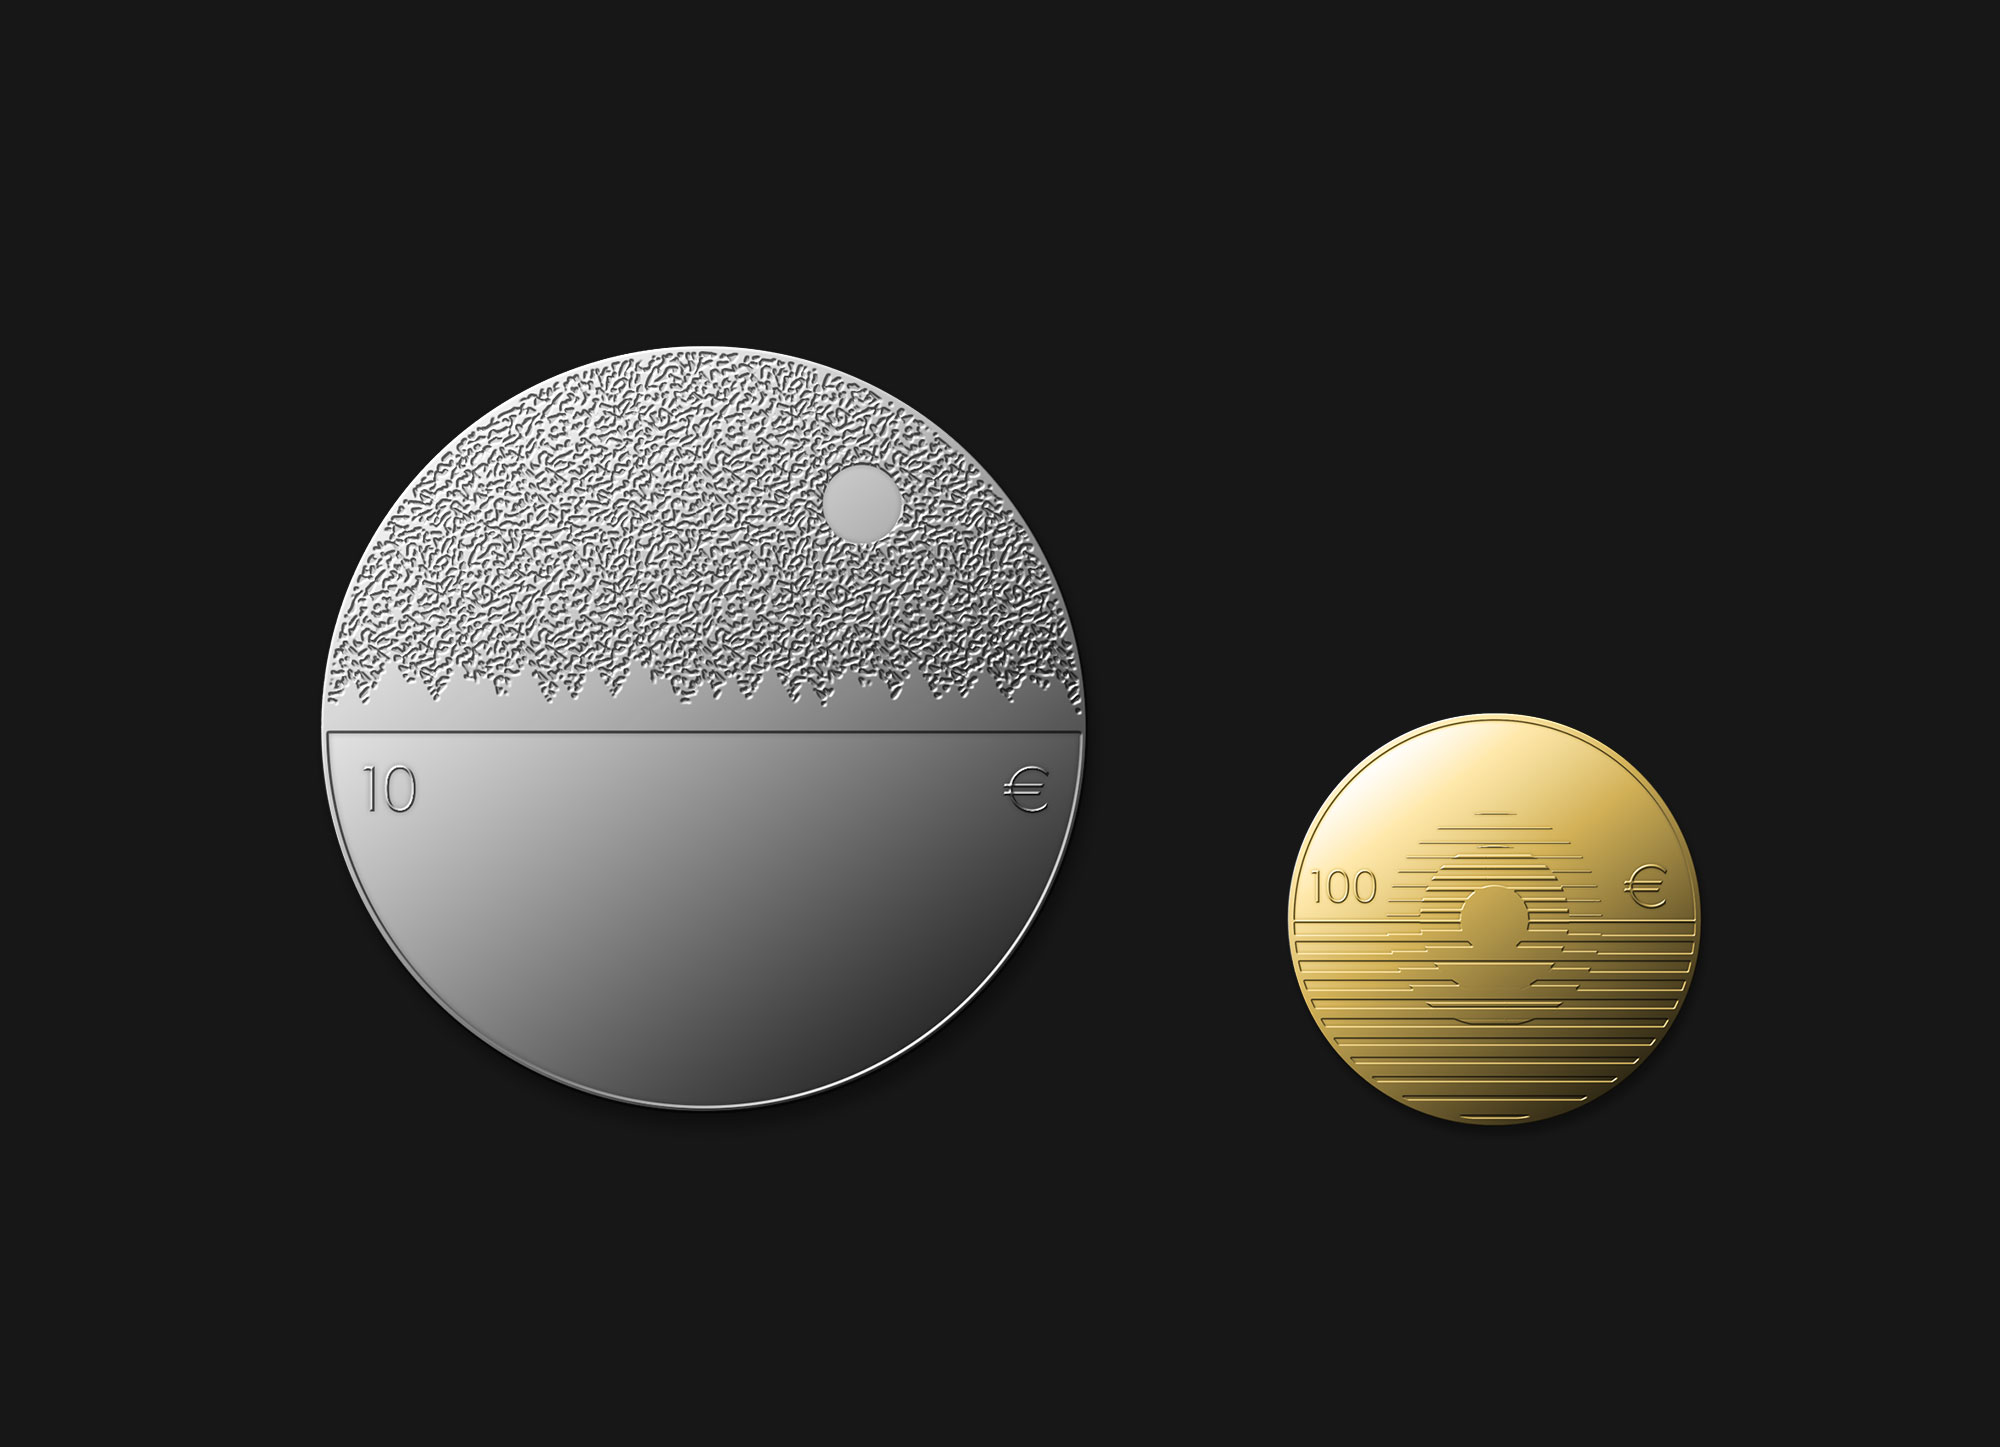 solstice_centenary_coins